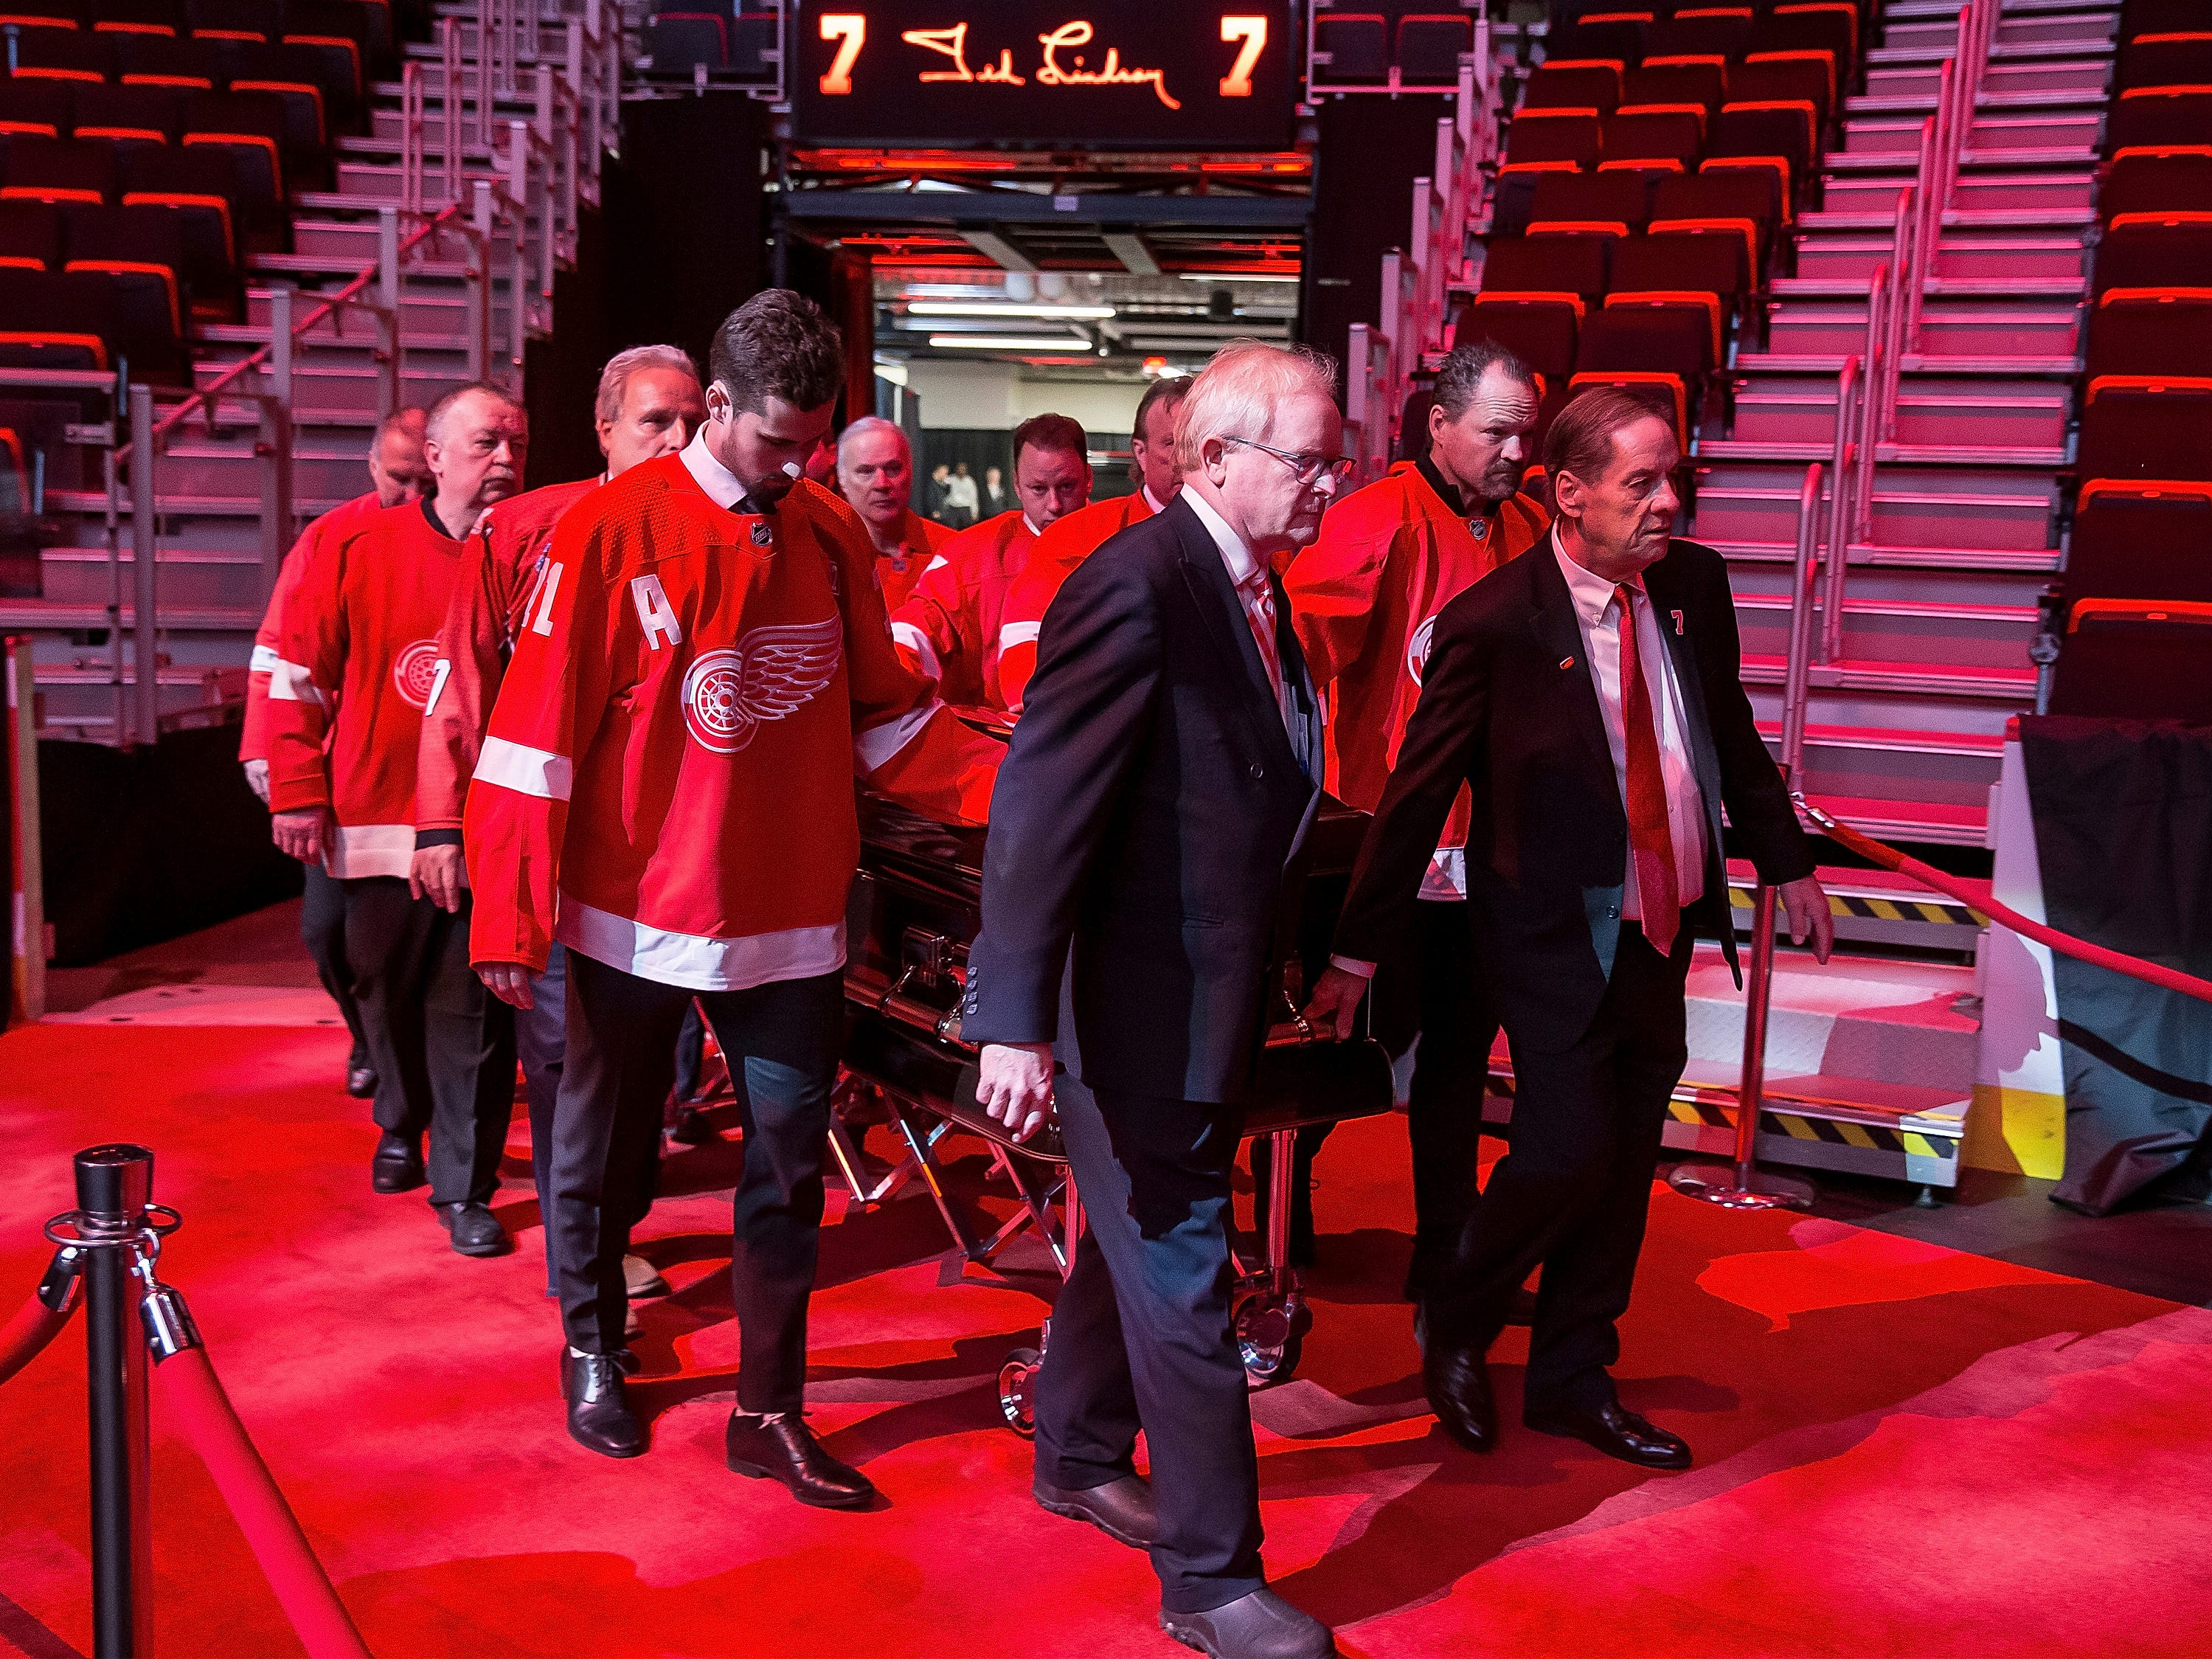 Blake Lindsay, right, son of Ted Lindsay, leads the casket of former Detroit Red Wing Ted Lindsay into the arena.